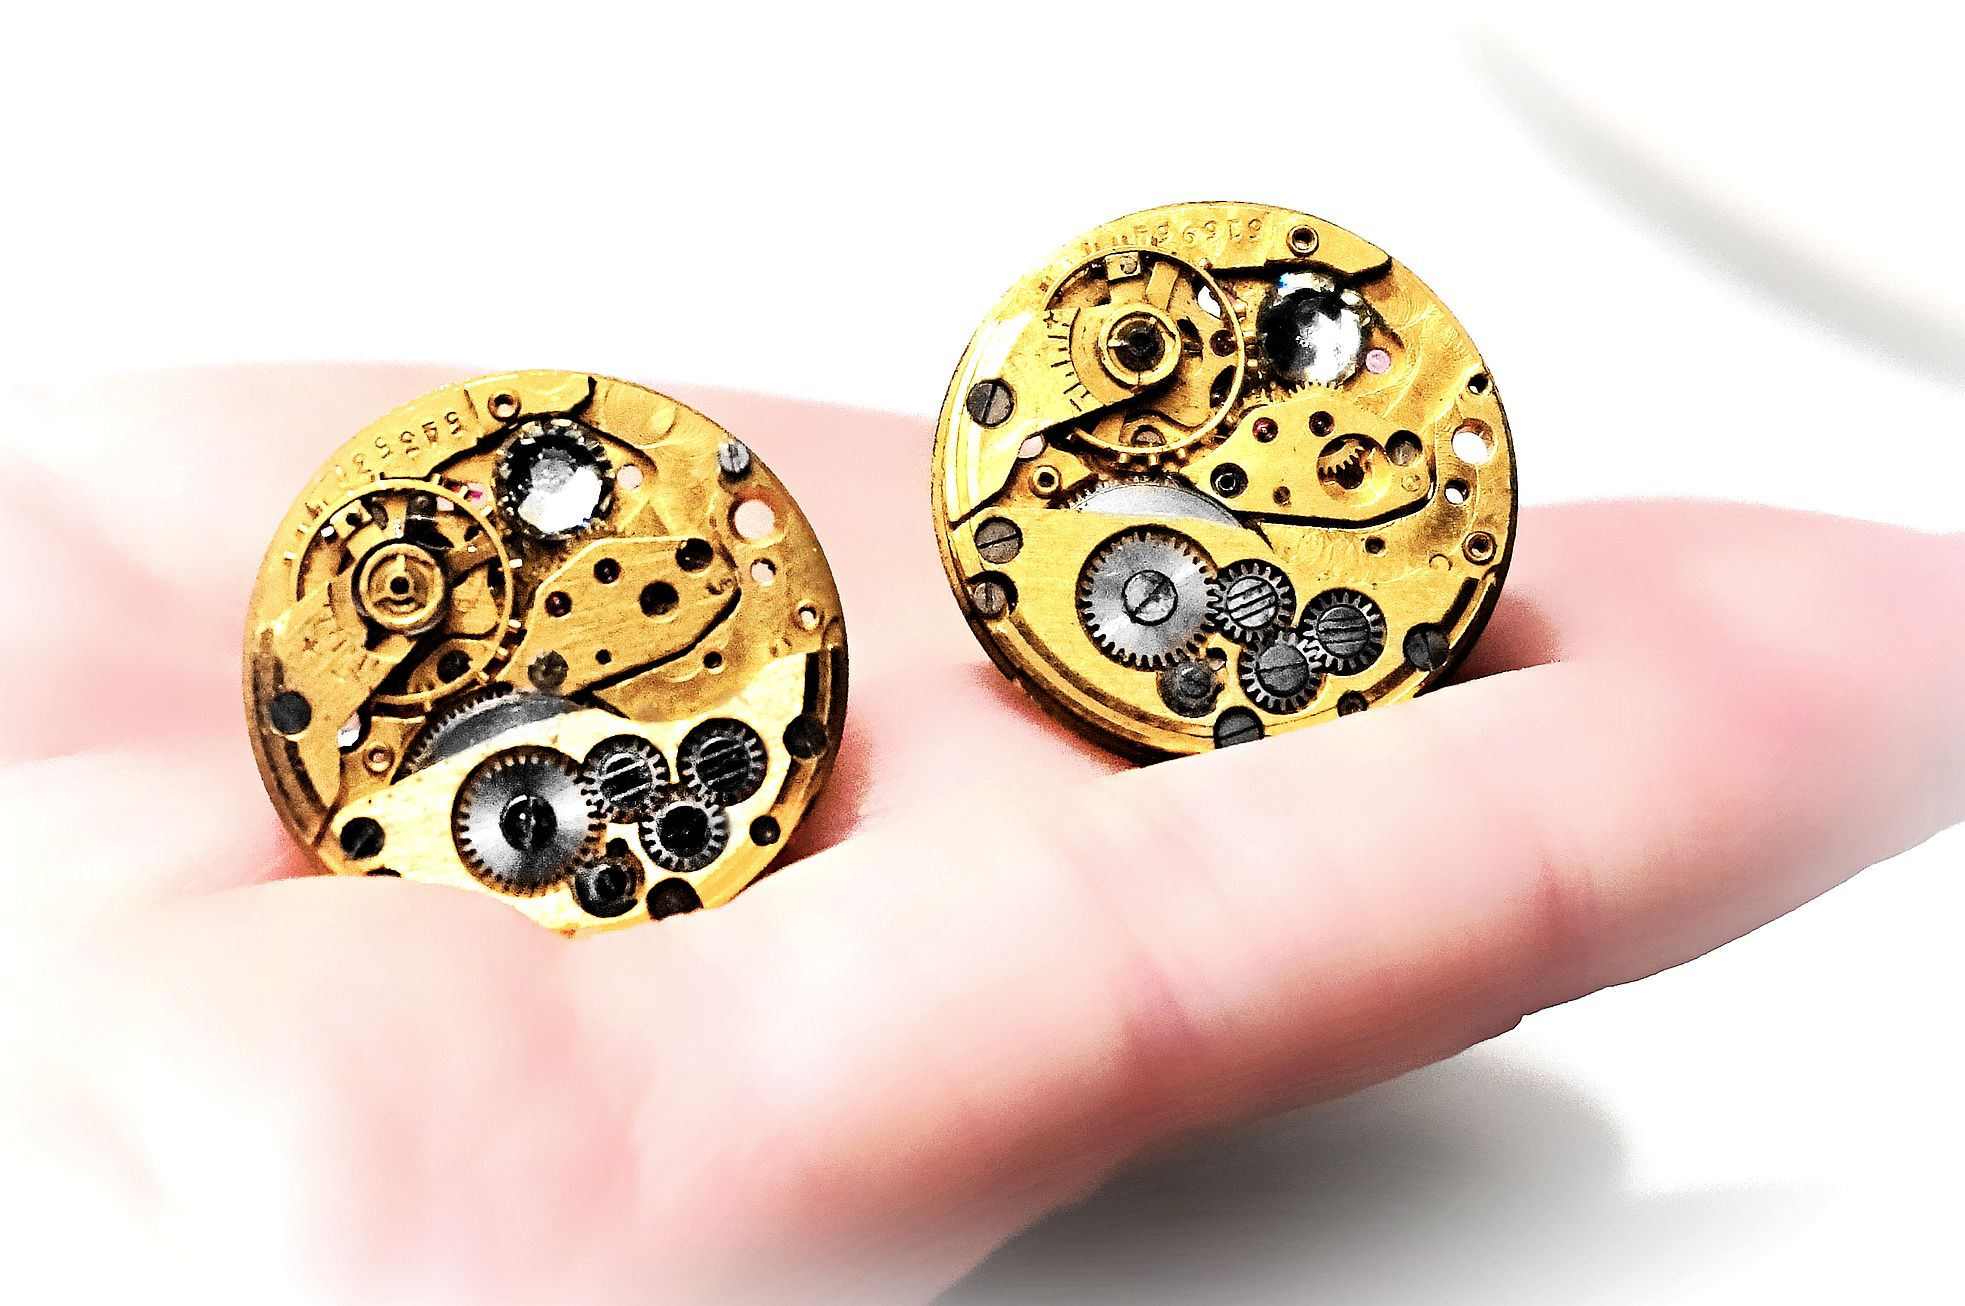 Steampunk BDSM mens jewelry cufflinks